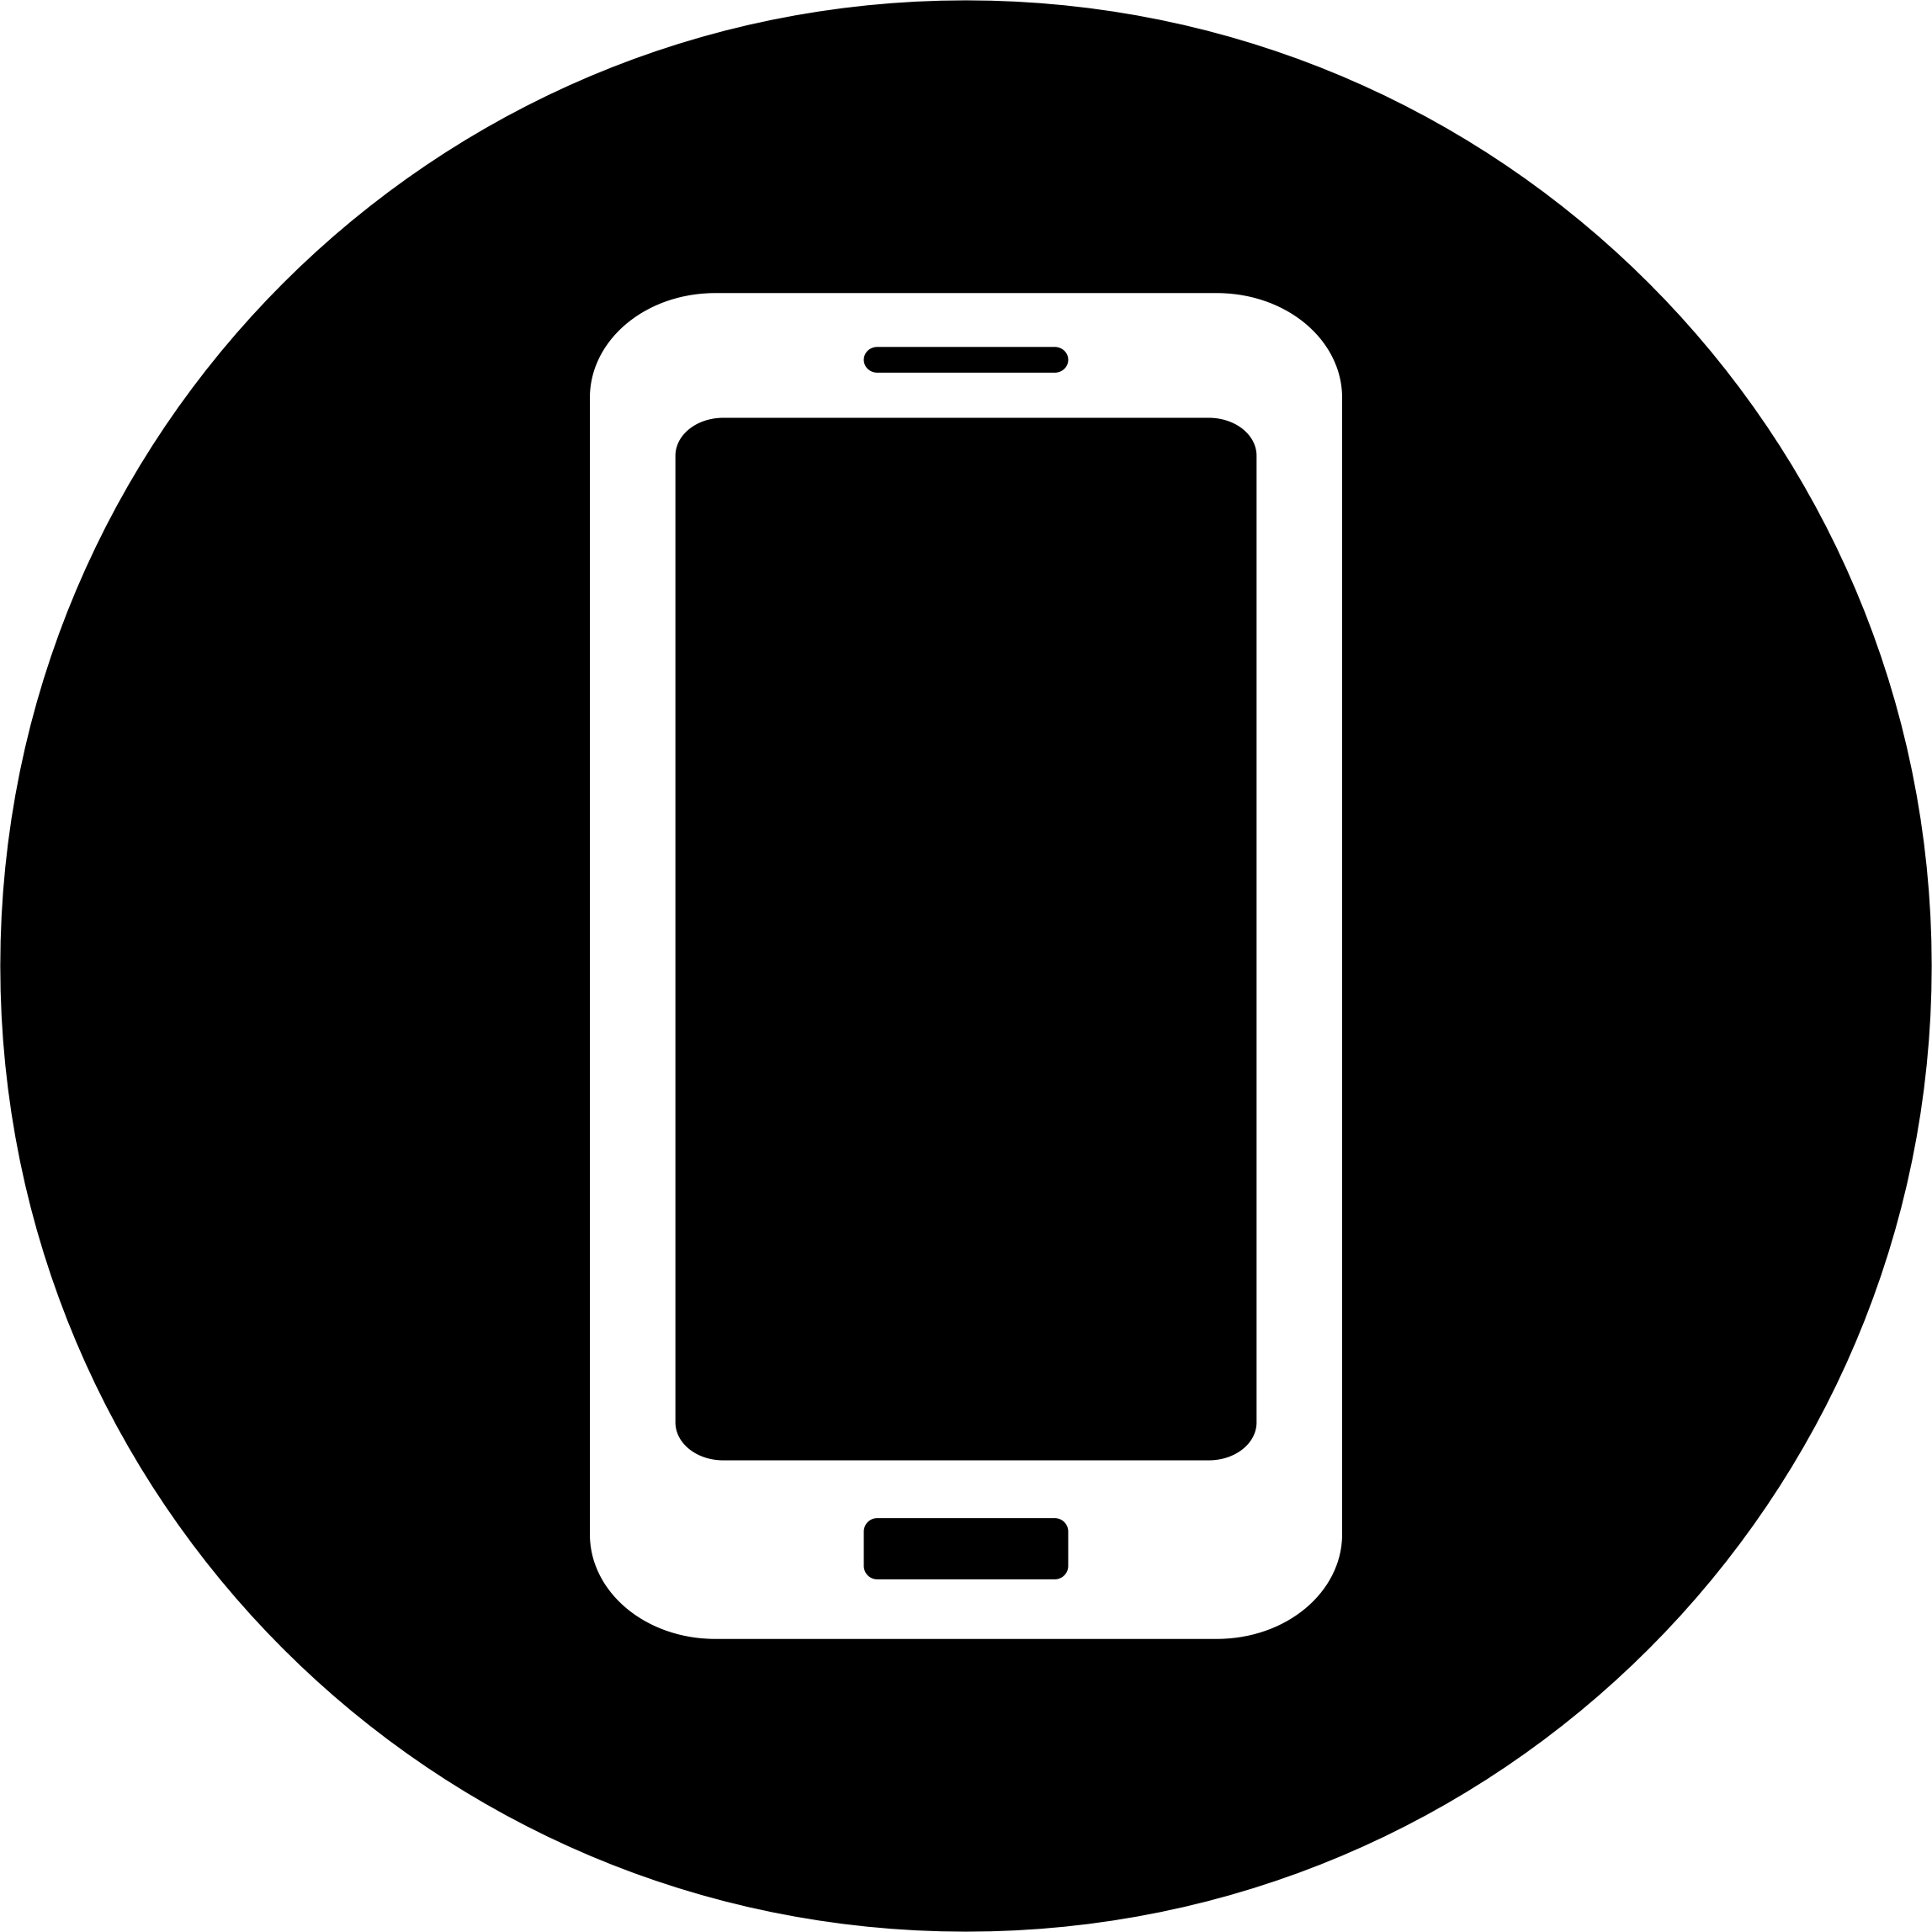 Mobile-Icon-White-on-Black